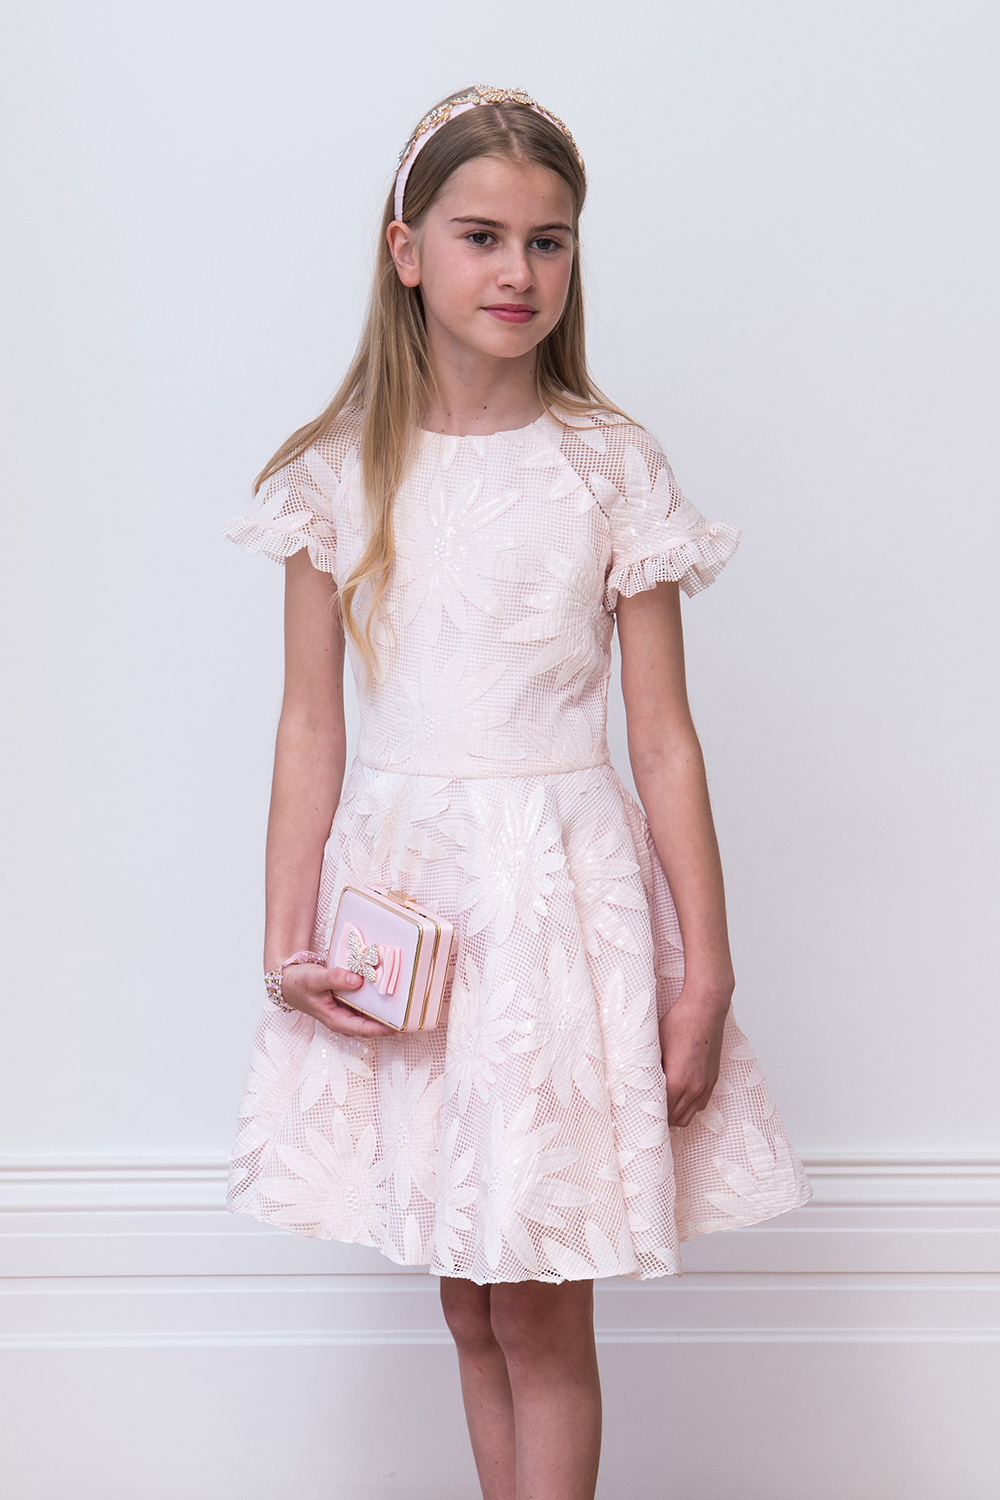 Lace Junior Bridesmaid Dresses - David Charles Childrens Wear